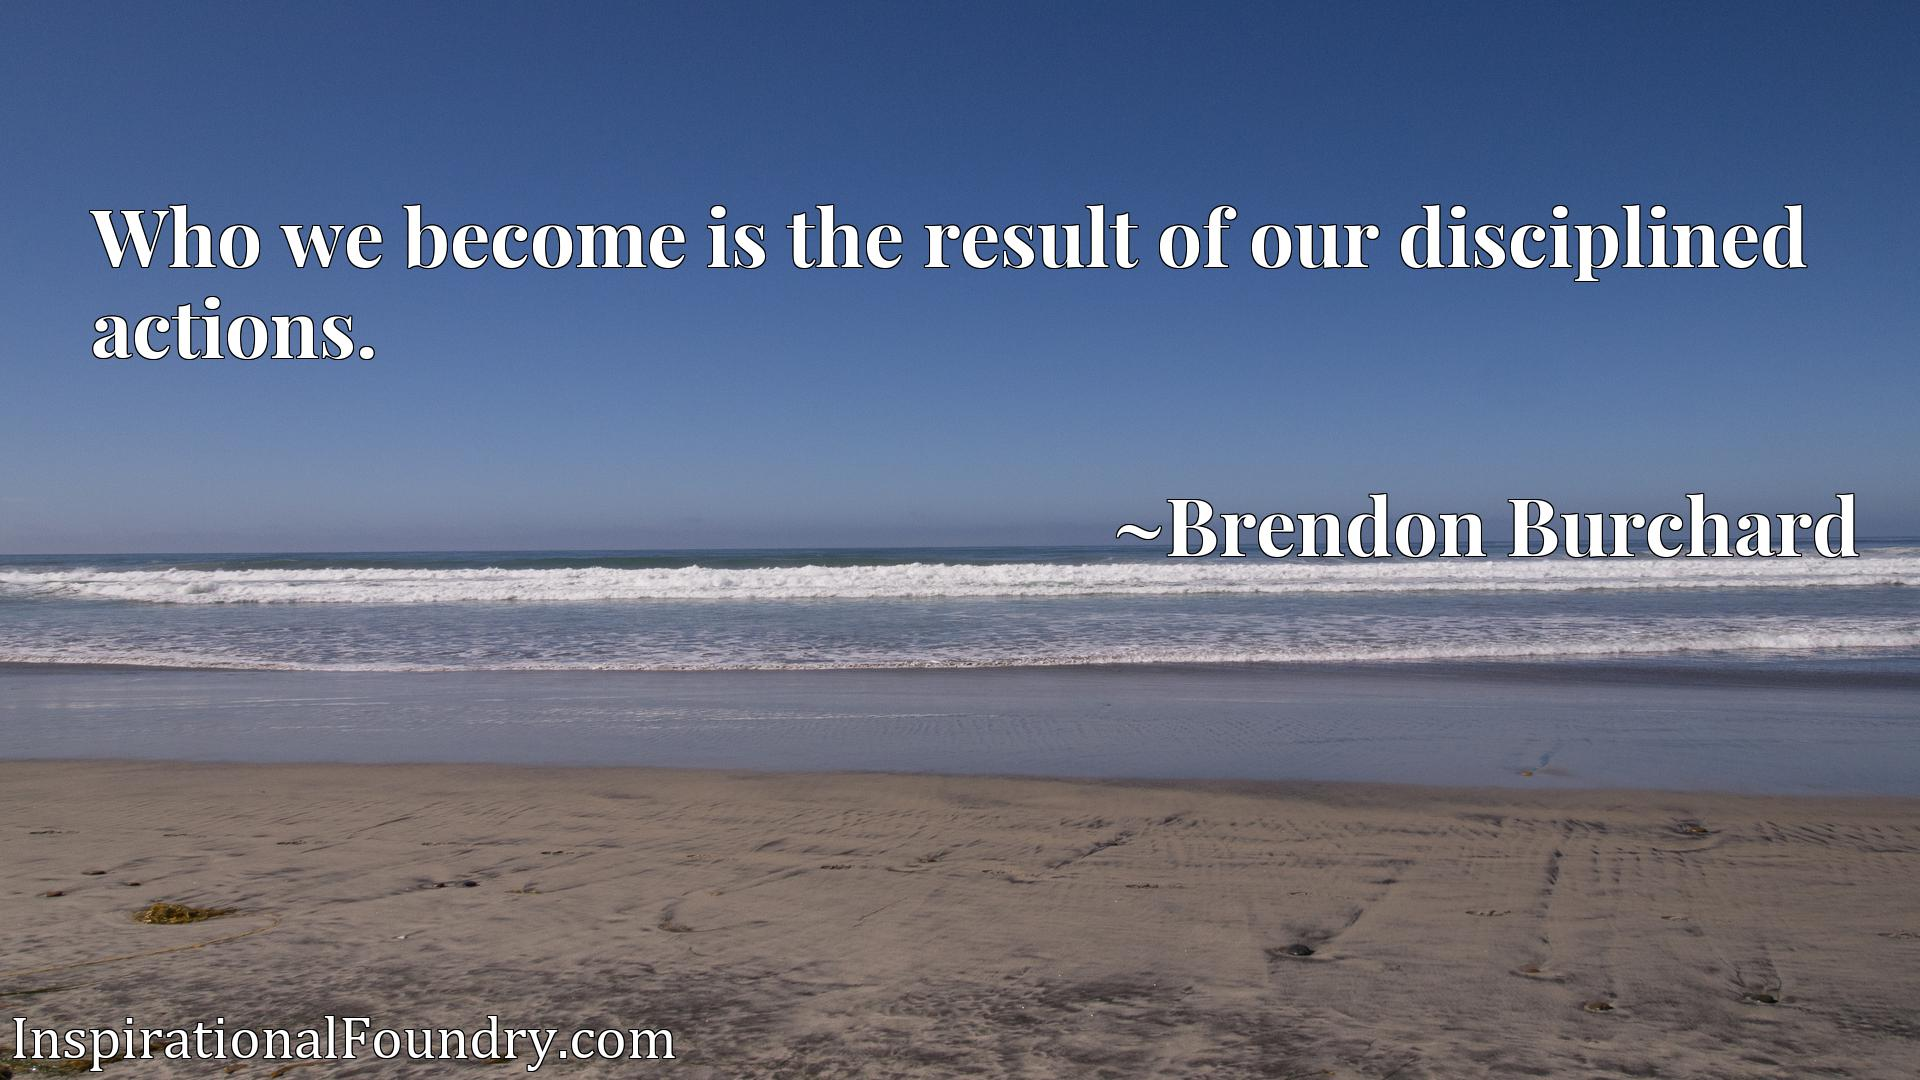 Who we become is the result of our disciplined actions.